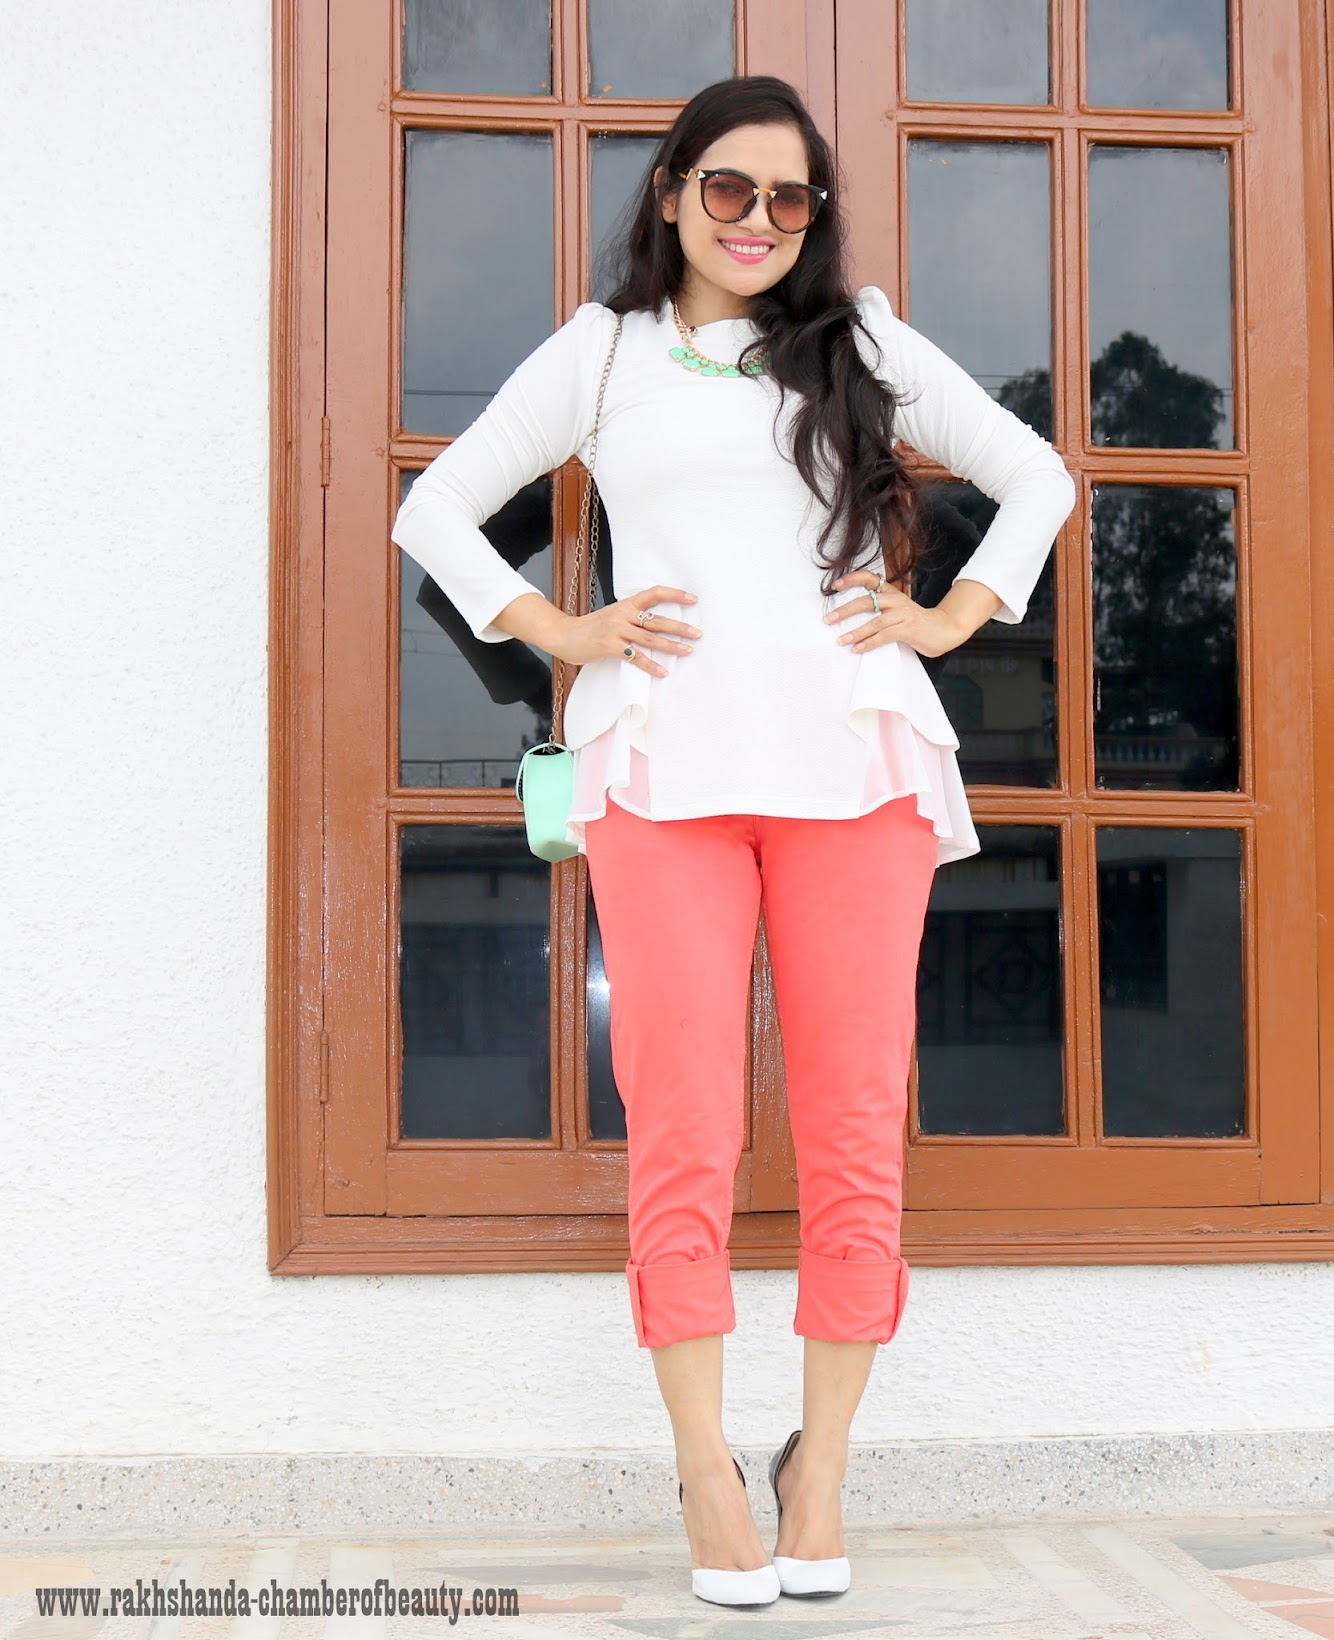 Ruffled Hemline top- OOTD (Zooomberg.com), OOTD, fashion trends 2015, Indian fashion blogger, Chamber of Beauty